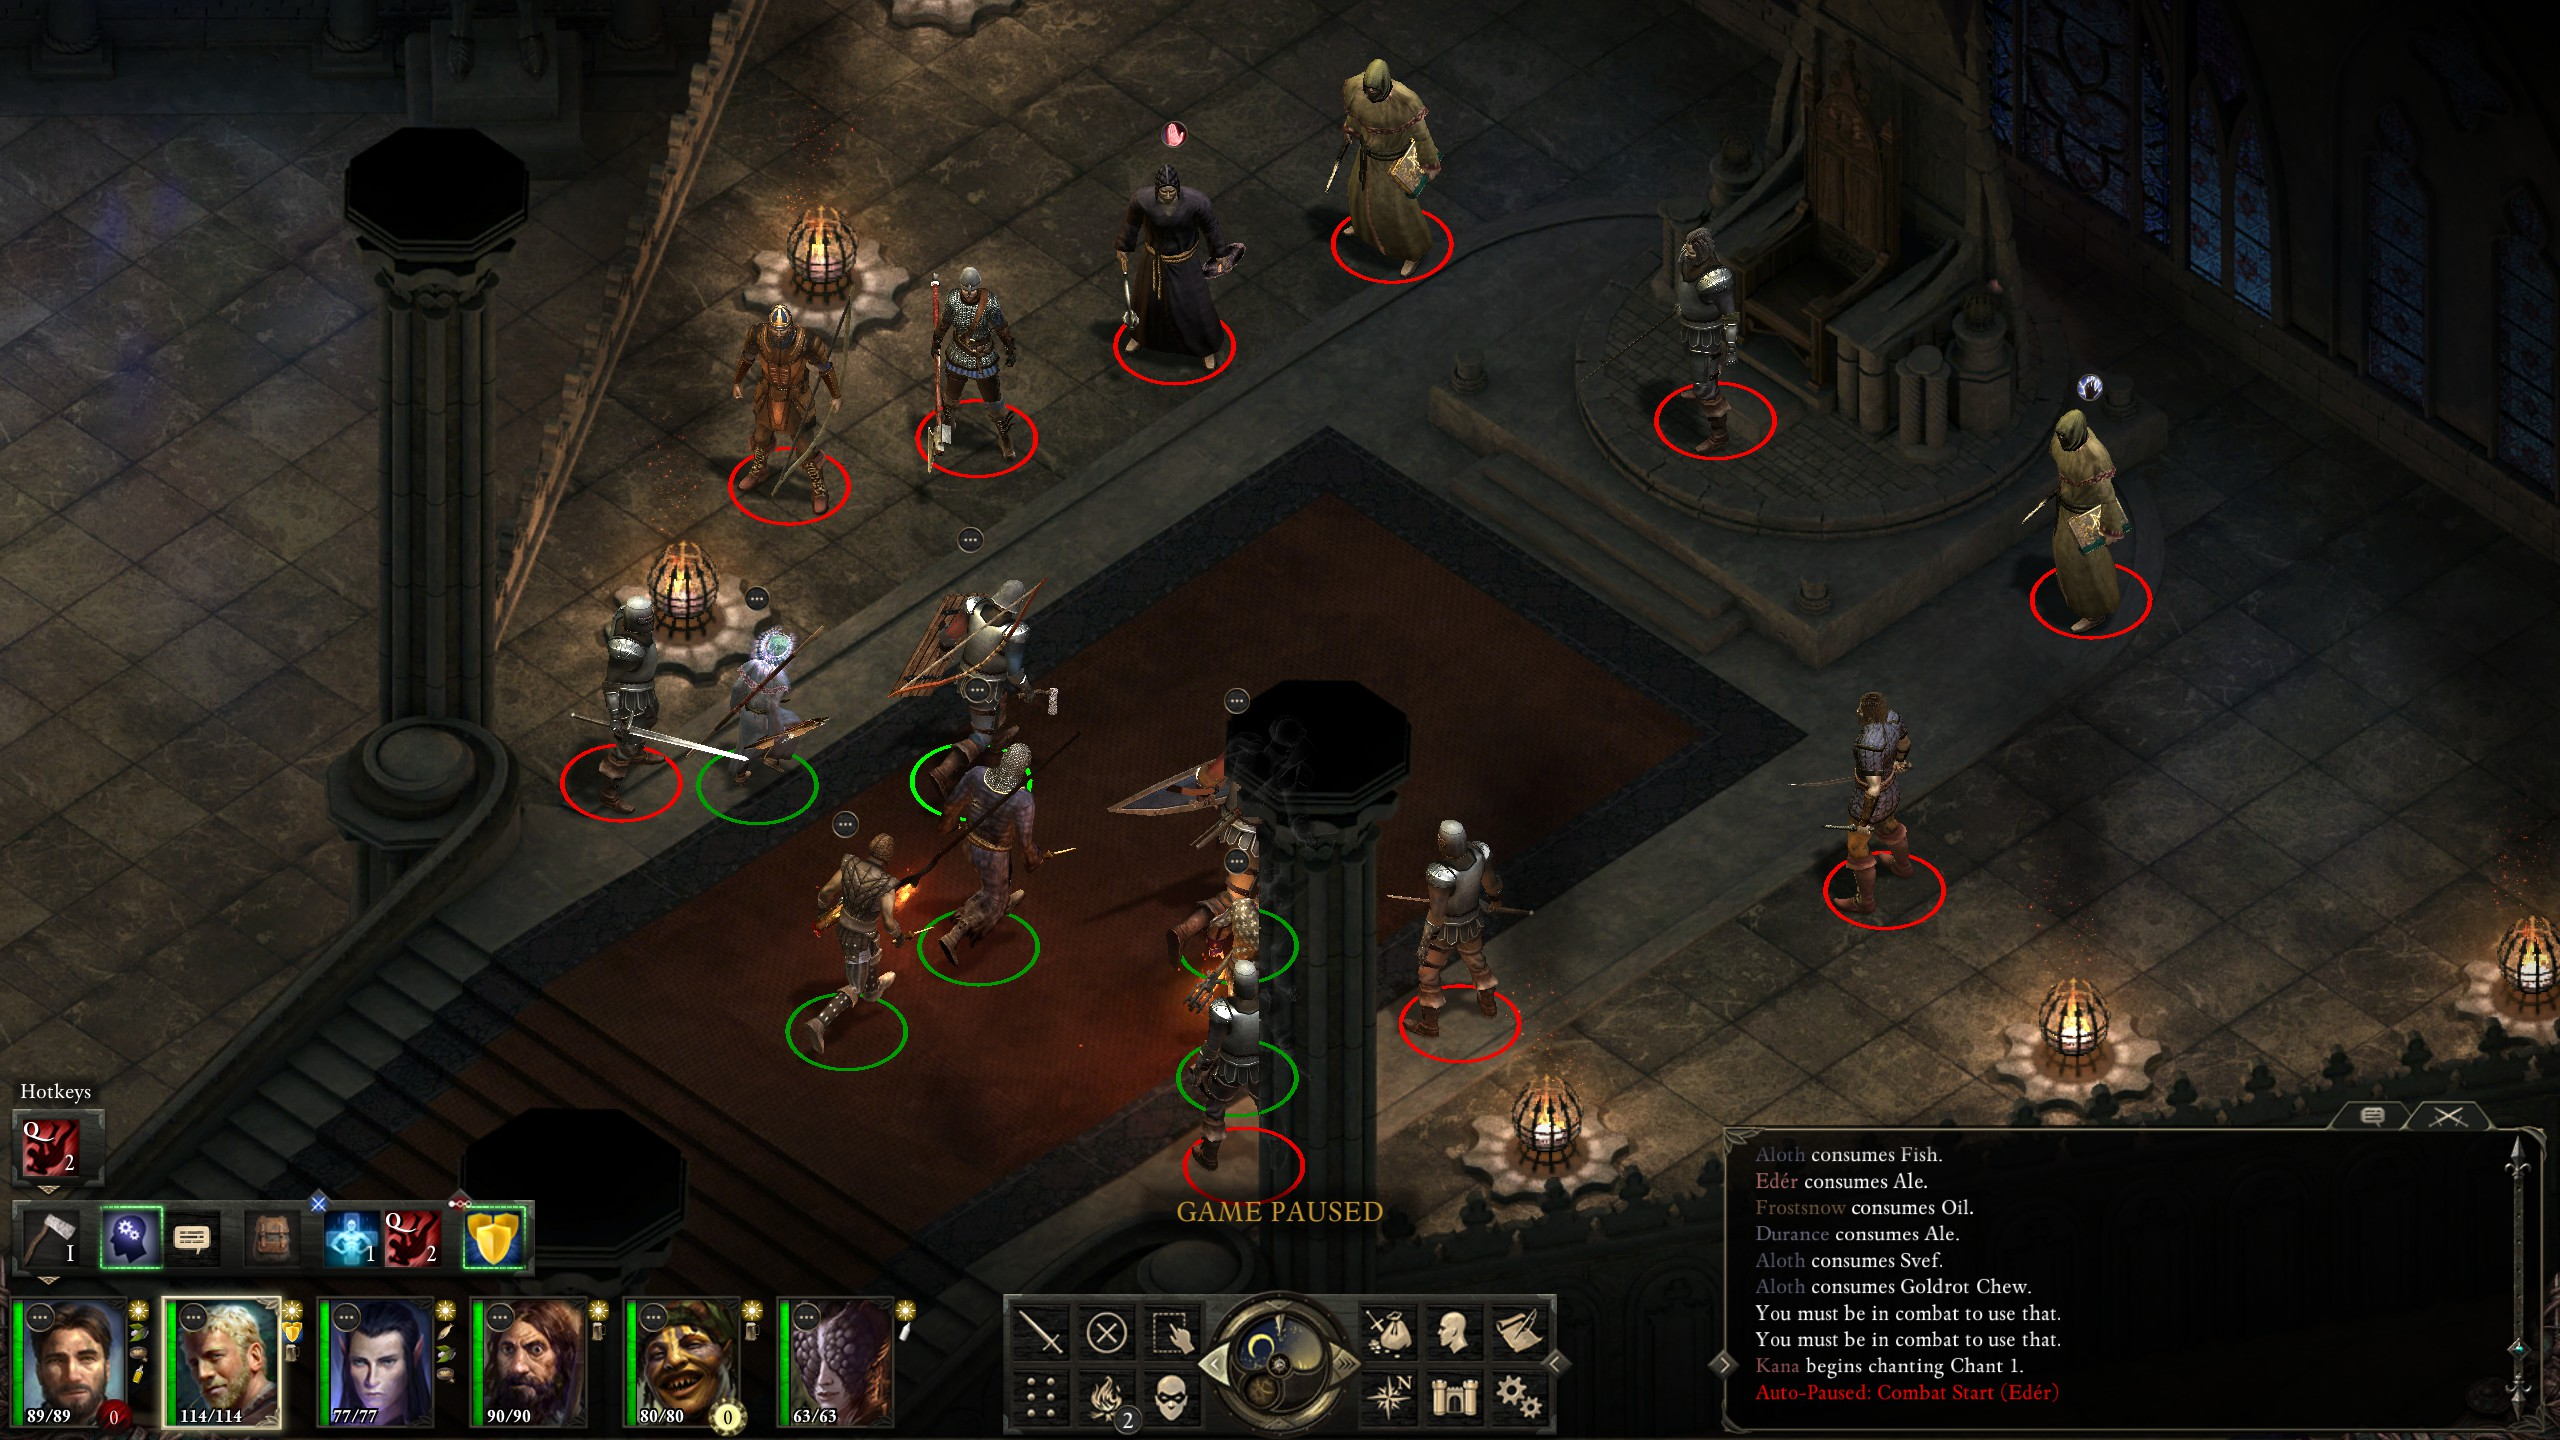 2018-06-16 Pillars of Eternity: Path of the Damned, Act I